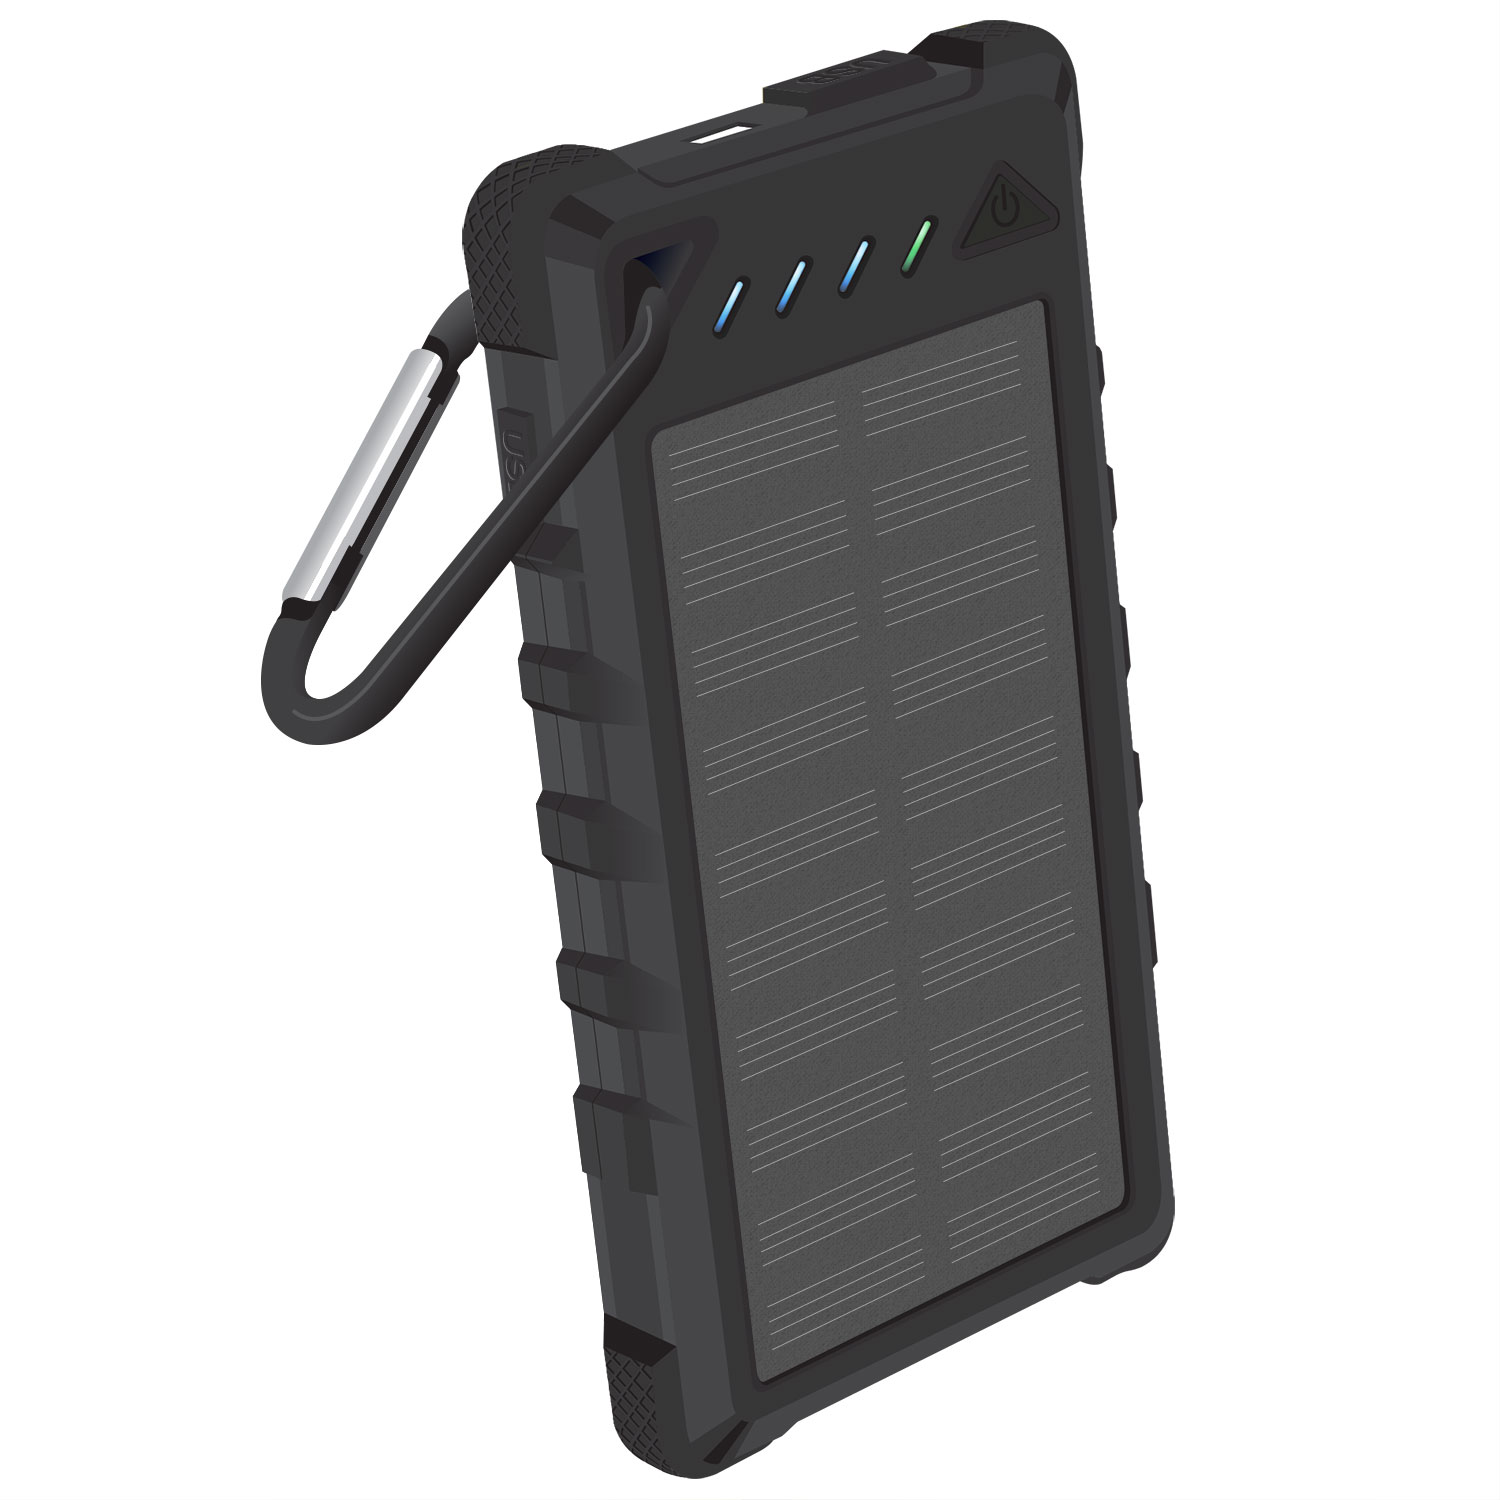 LG Esteem Solar Powered Portable PowerBank Black